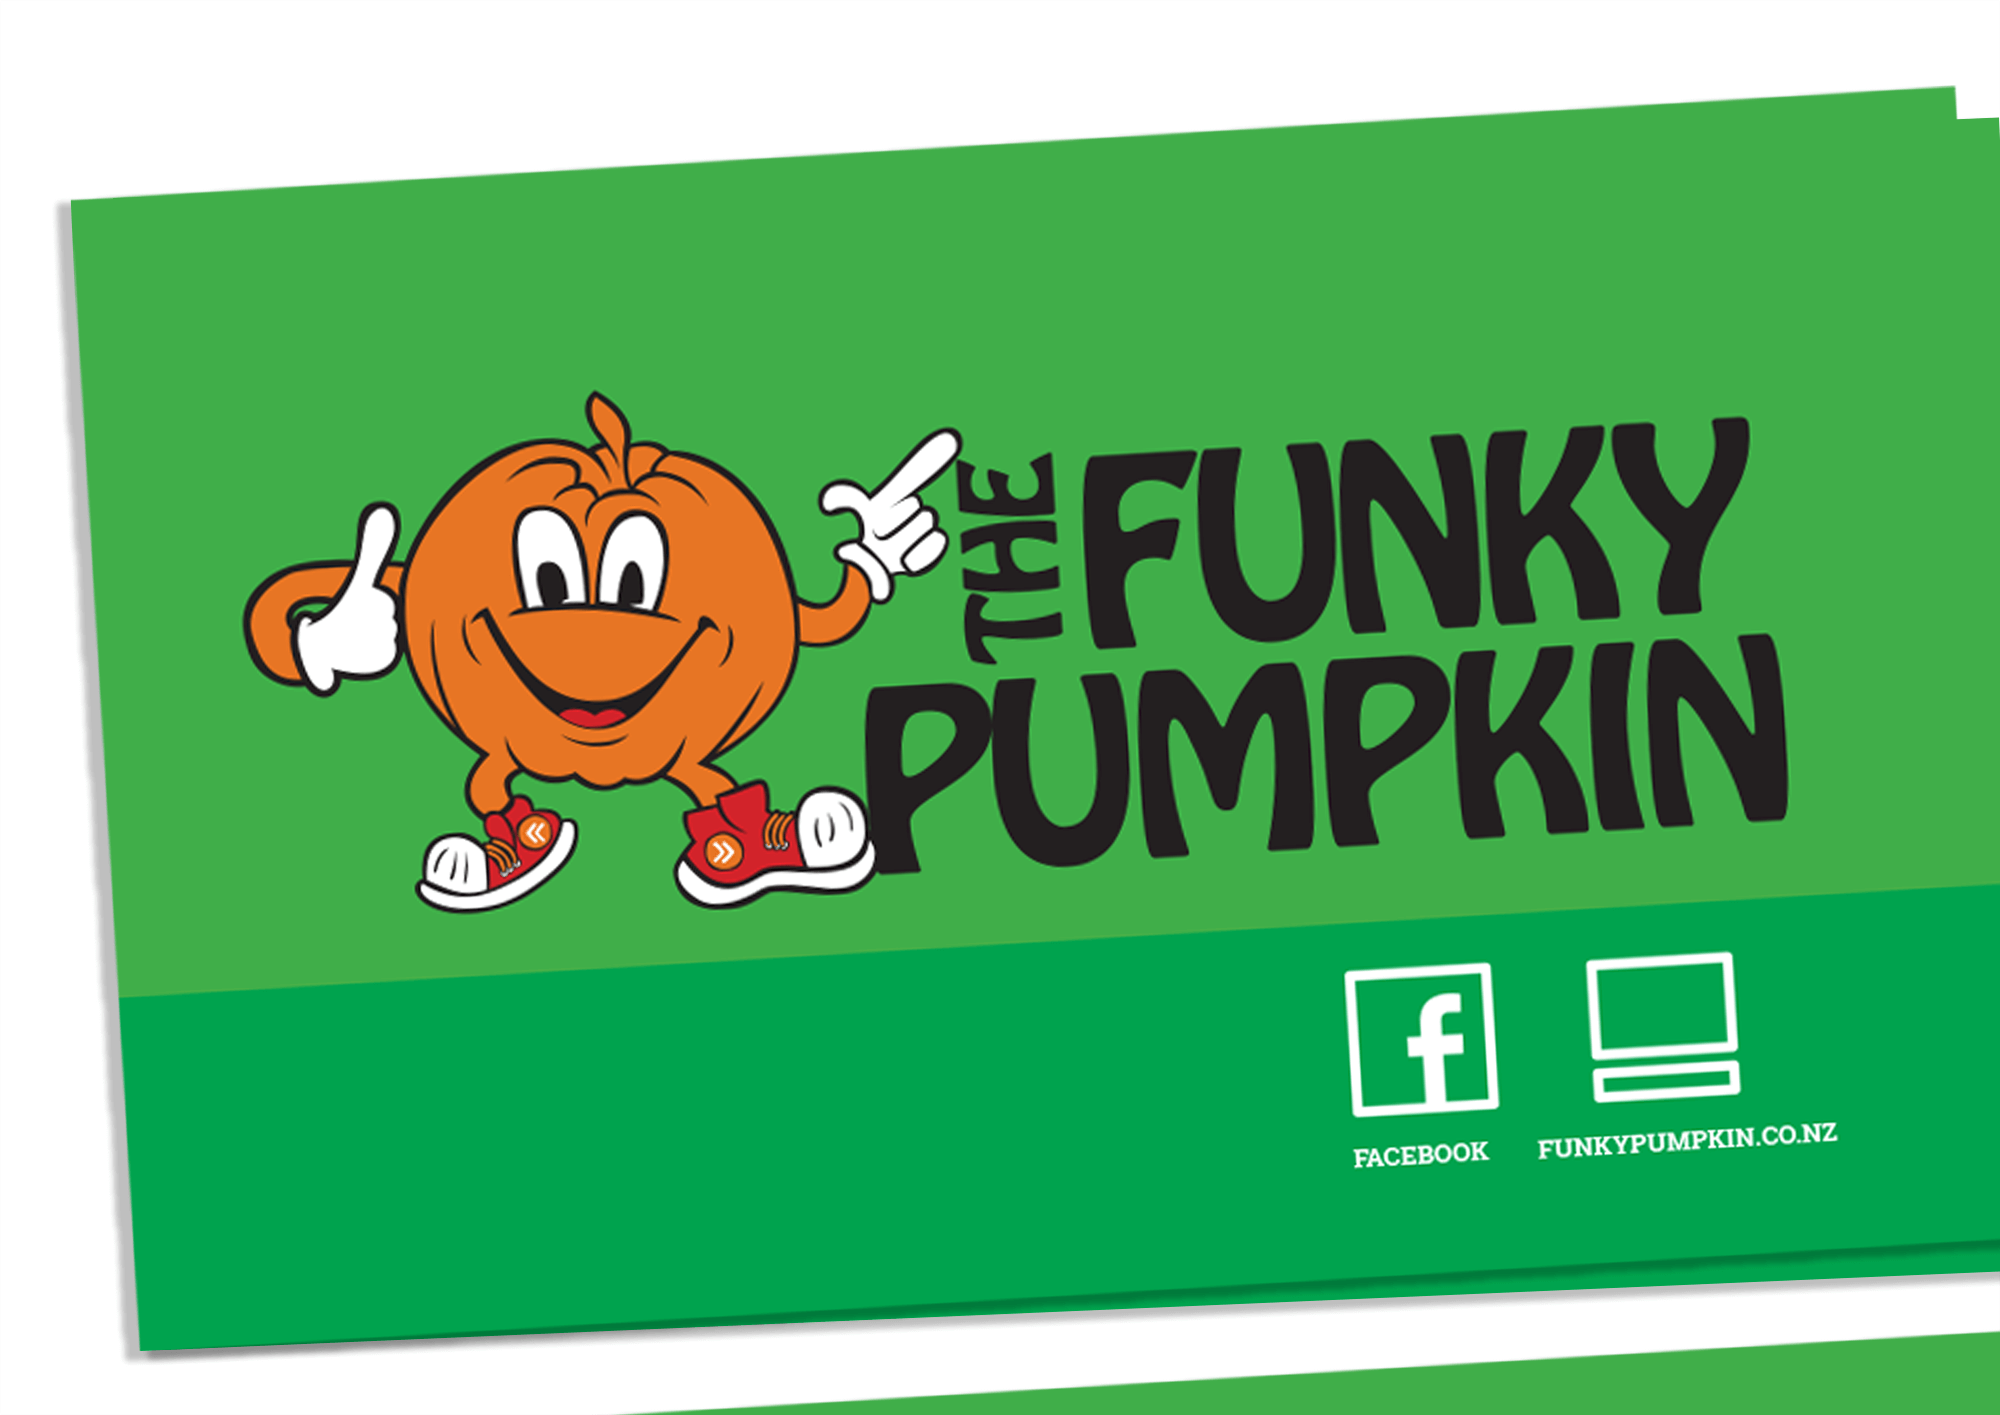 The Funky Pumpkin Business Card